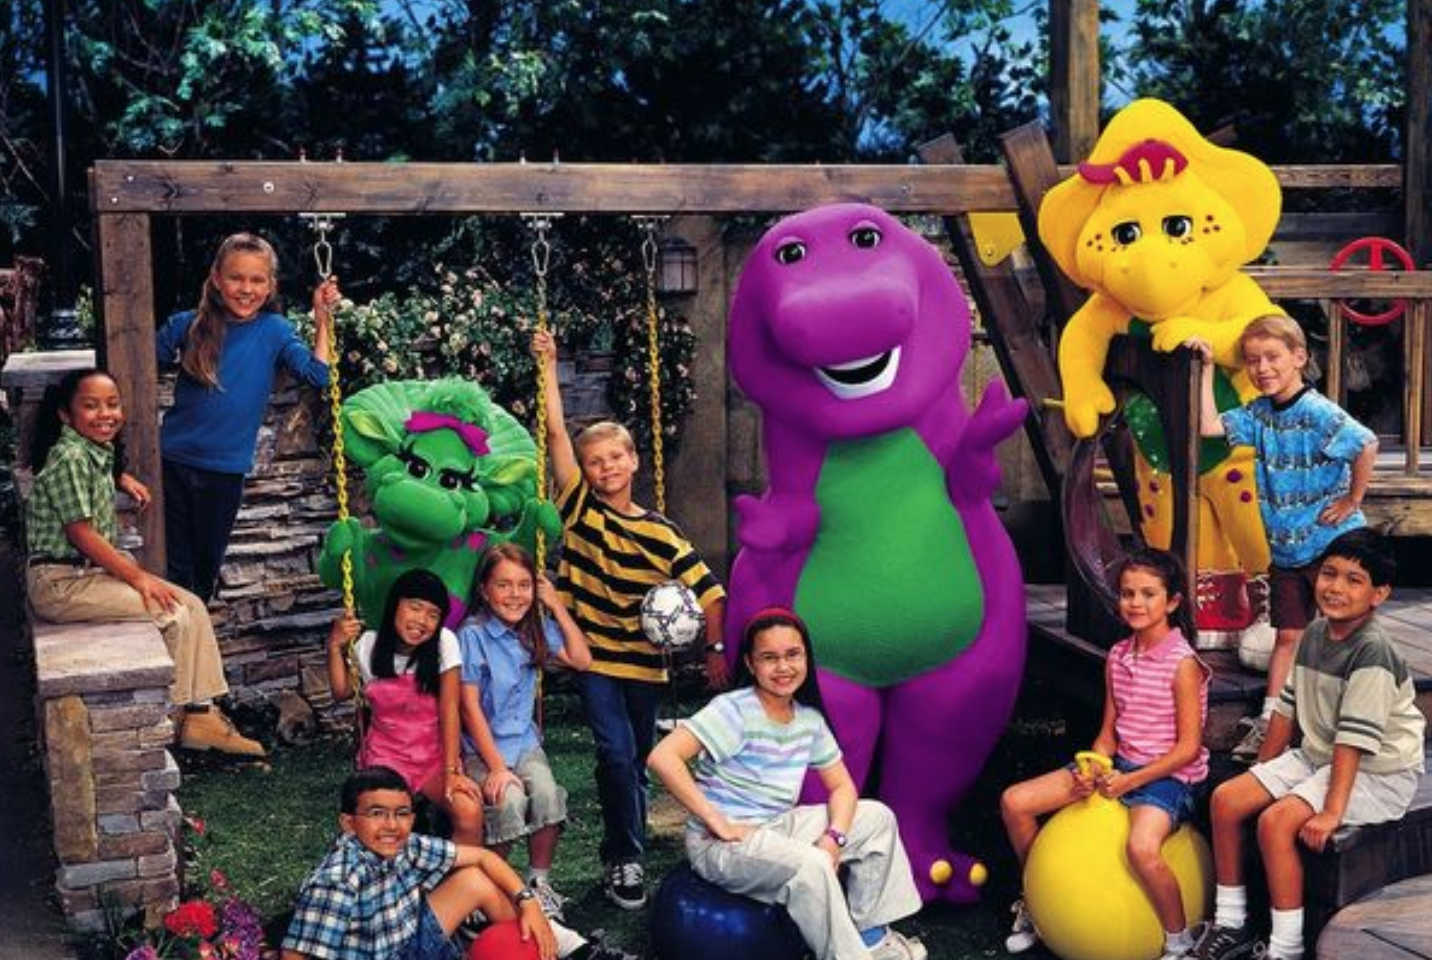 Barney The Dinosaur actor now runs a tantric sex business